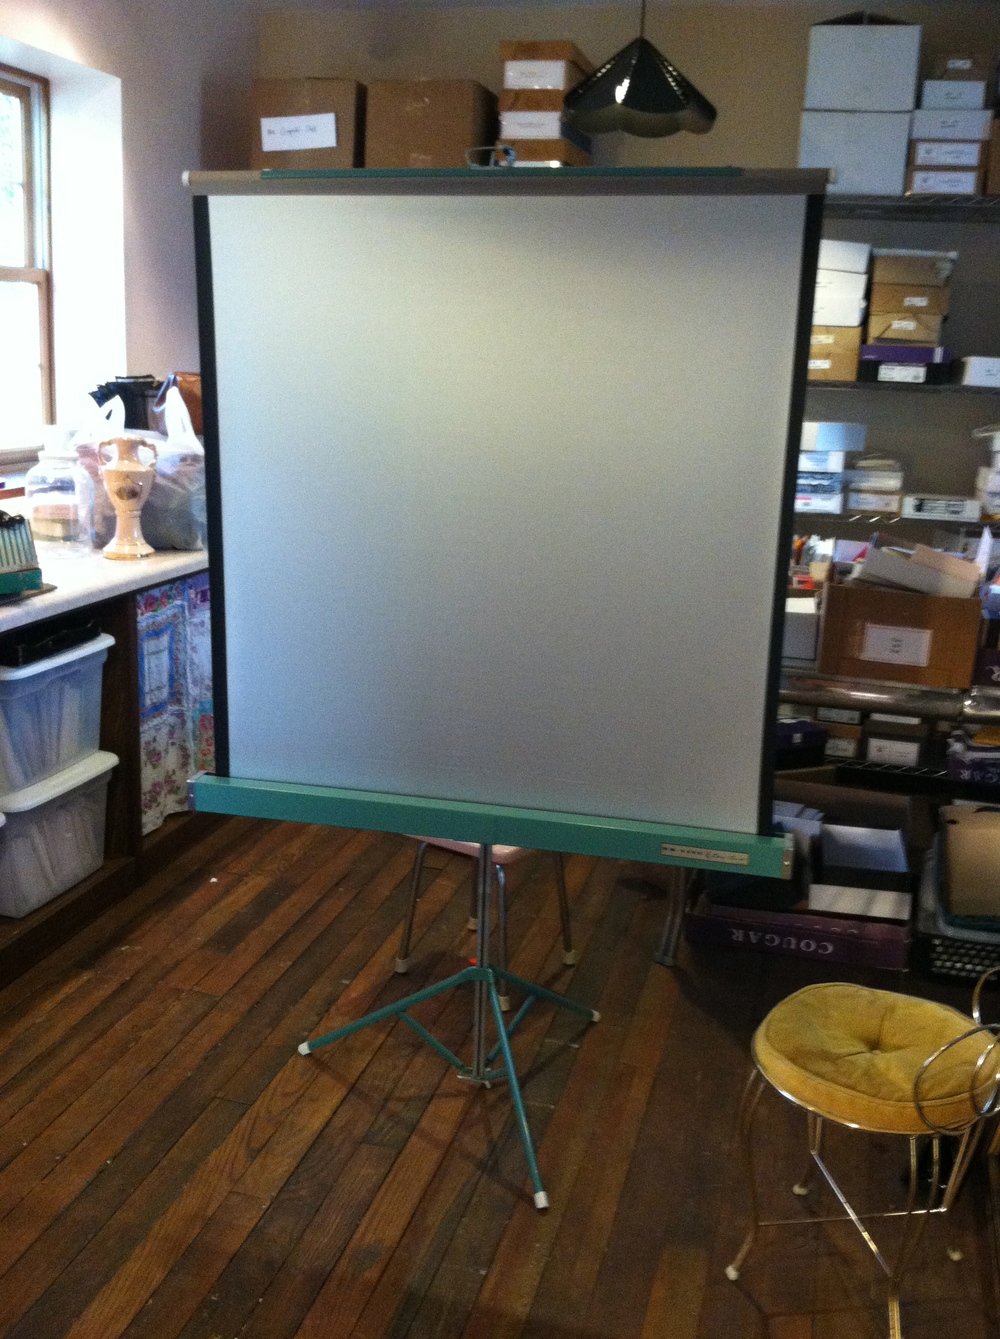 A perfectly good projector screen